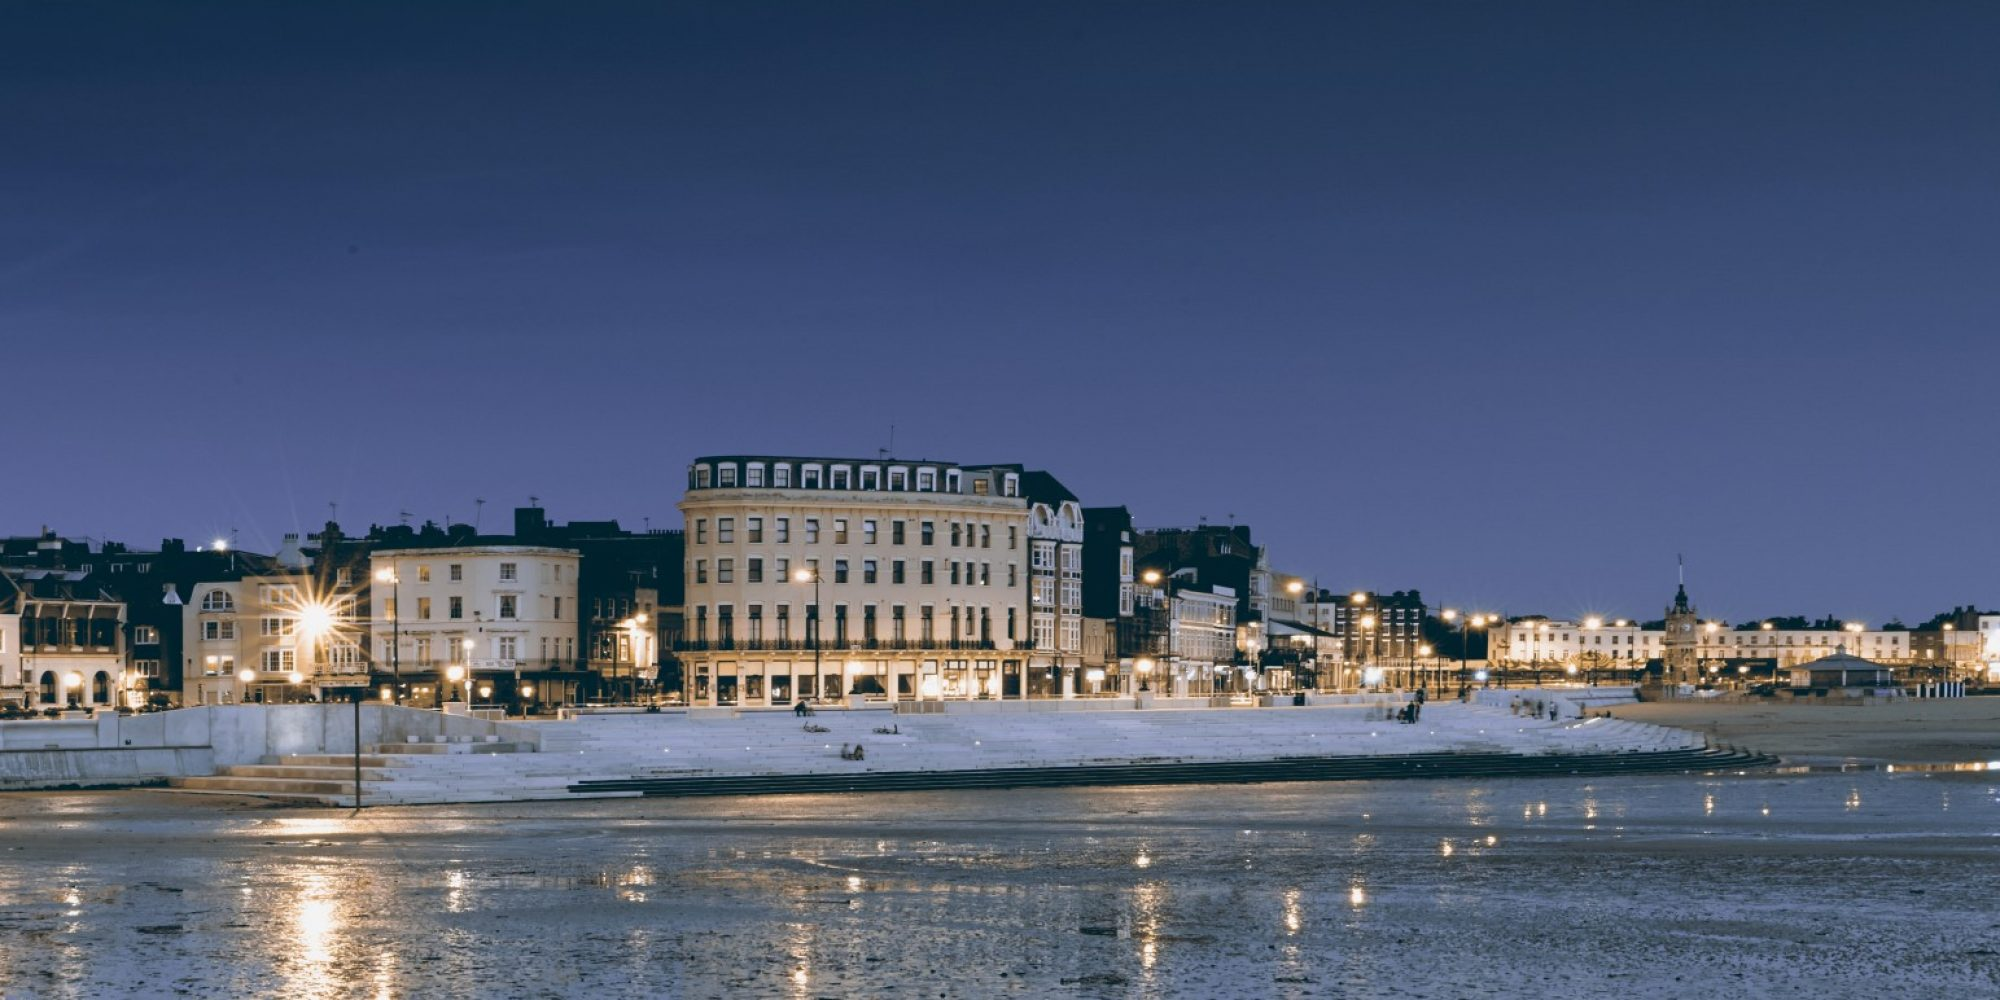 Margate at Night